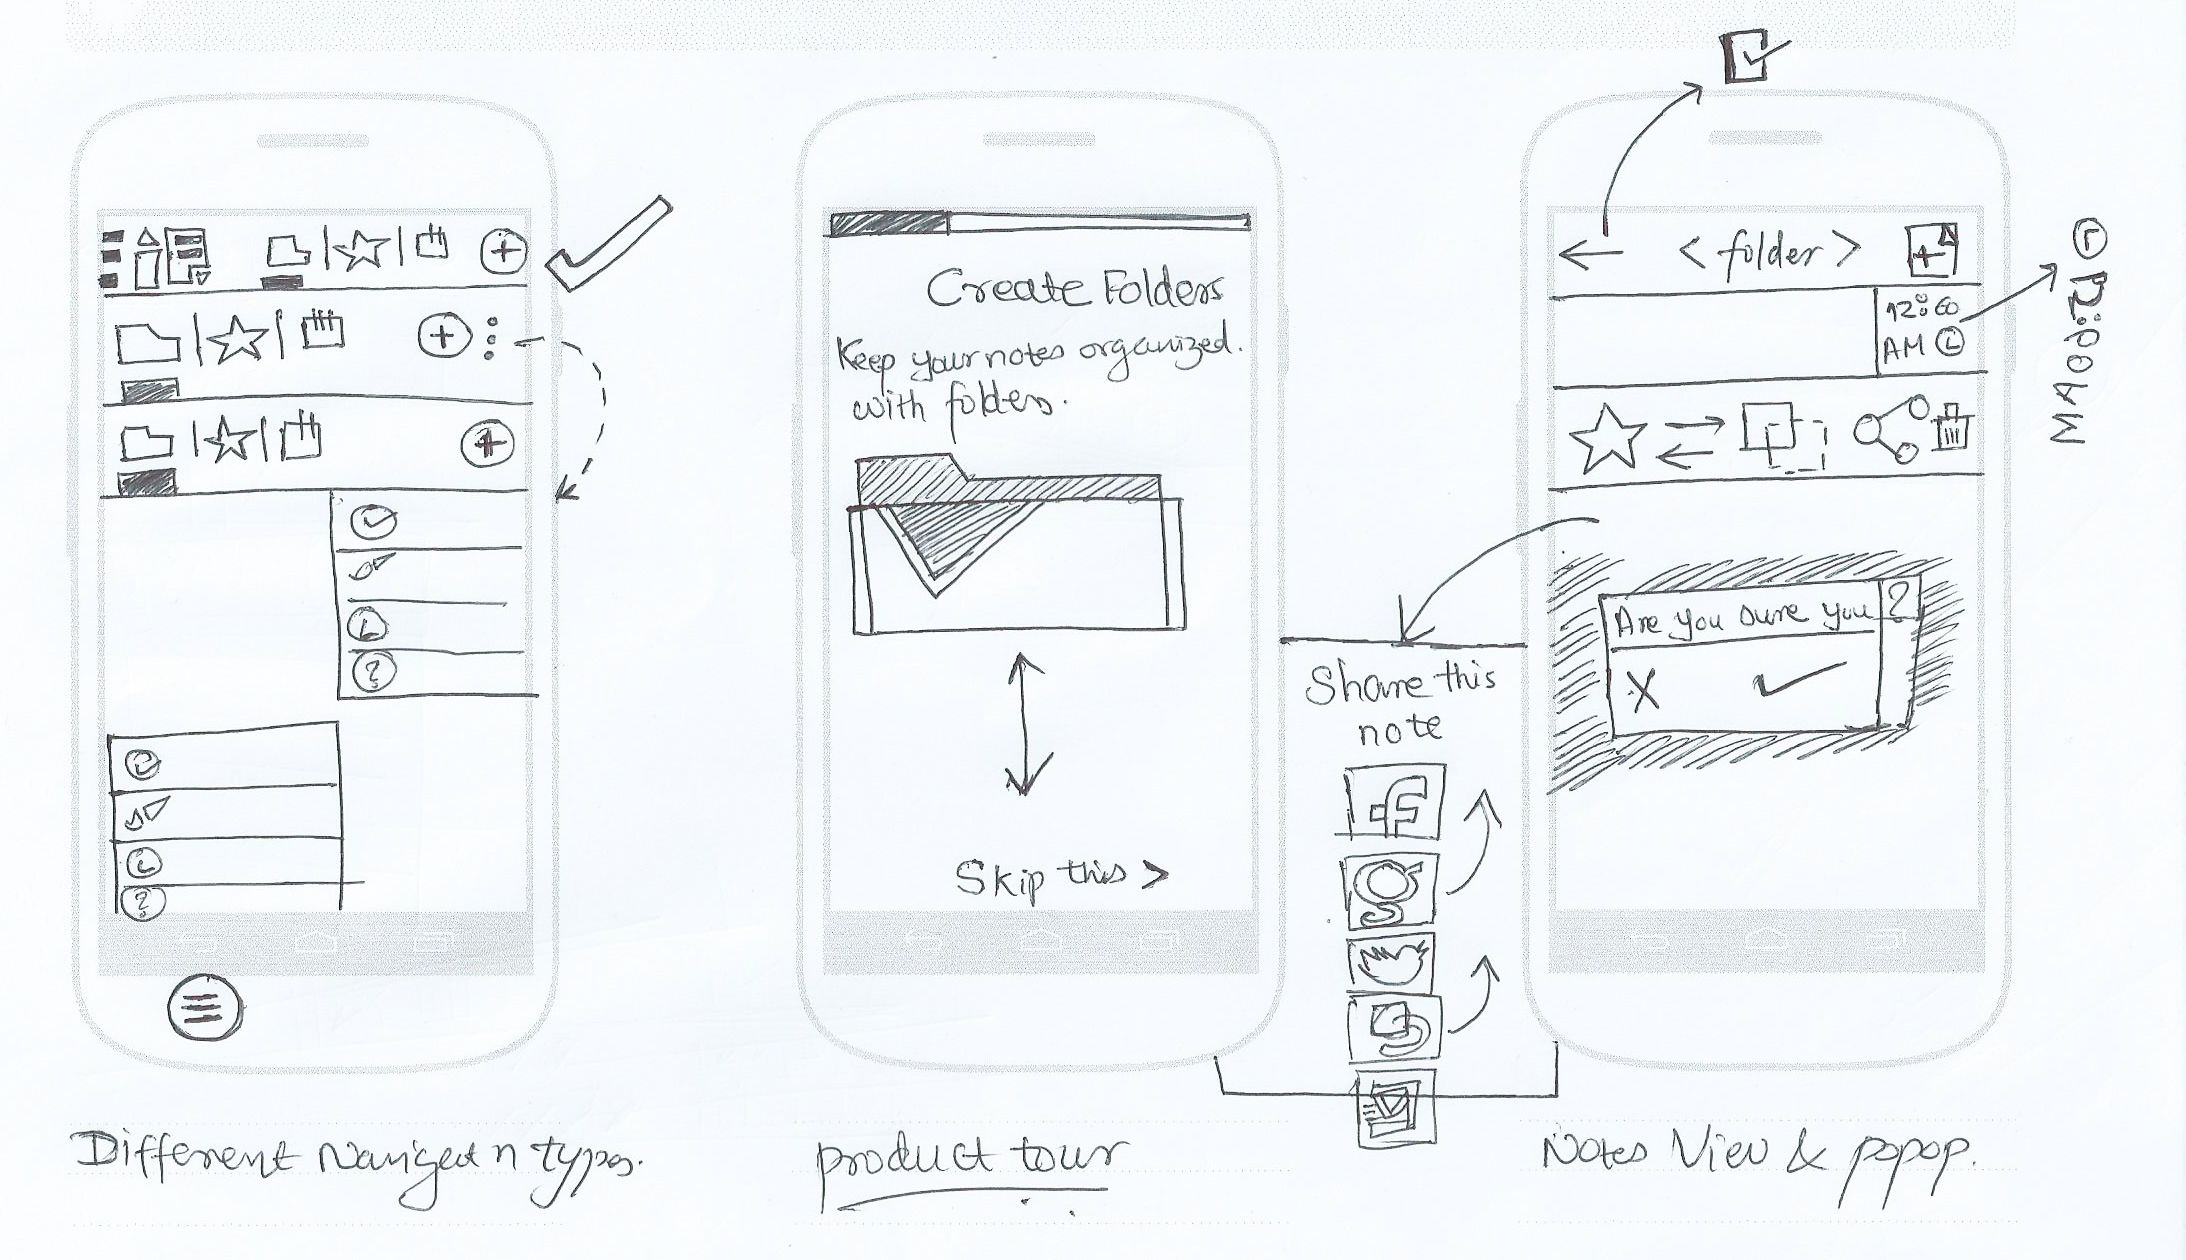 Juswrite Navigation Product Tour Note View Wireframe